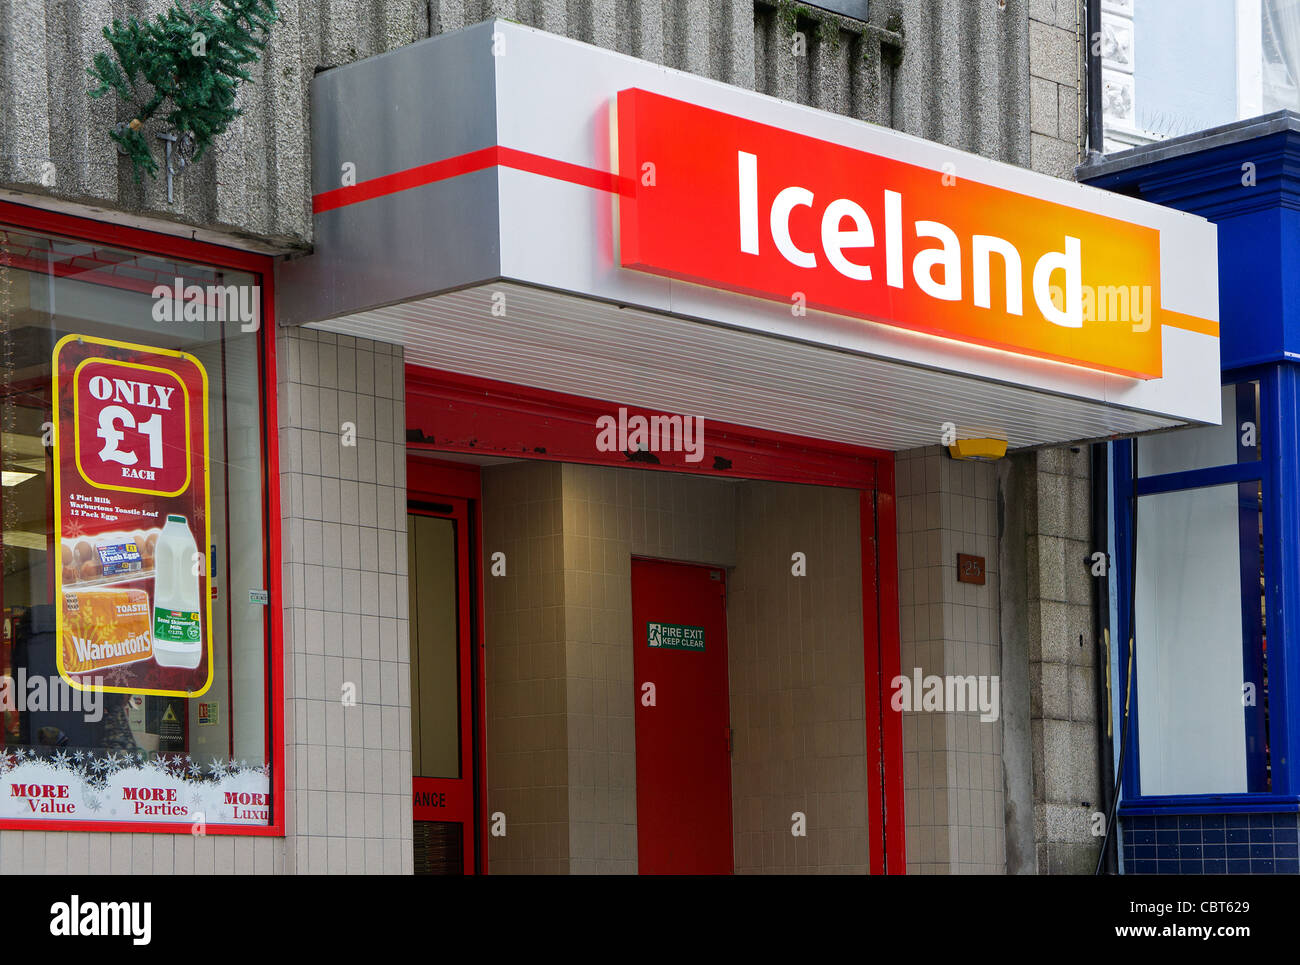 An Iceland frozen food store in Redruth, Cornwall, UK - Stock Image